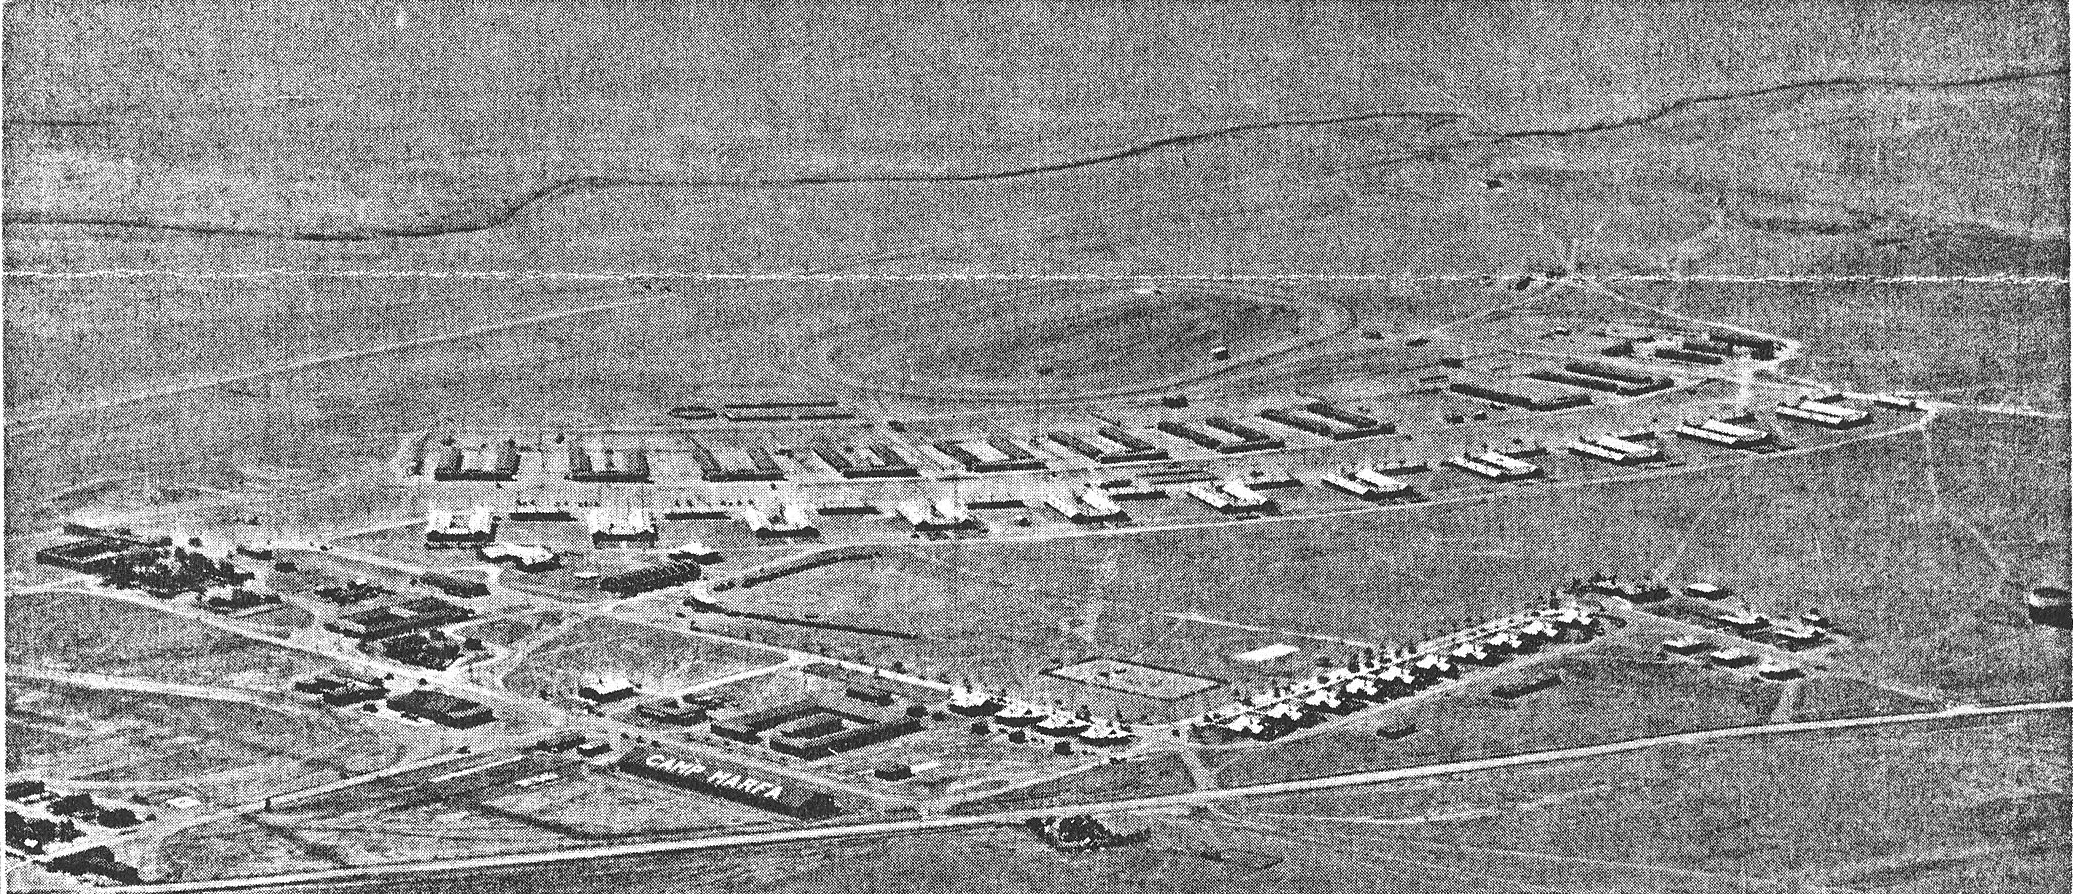 Aerial view of Fort D.A. Russell